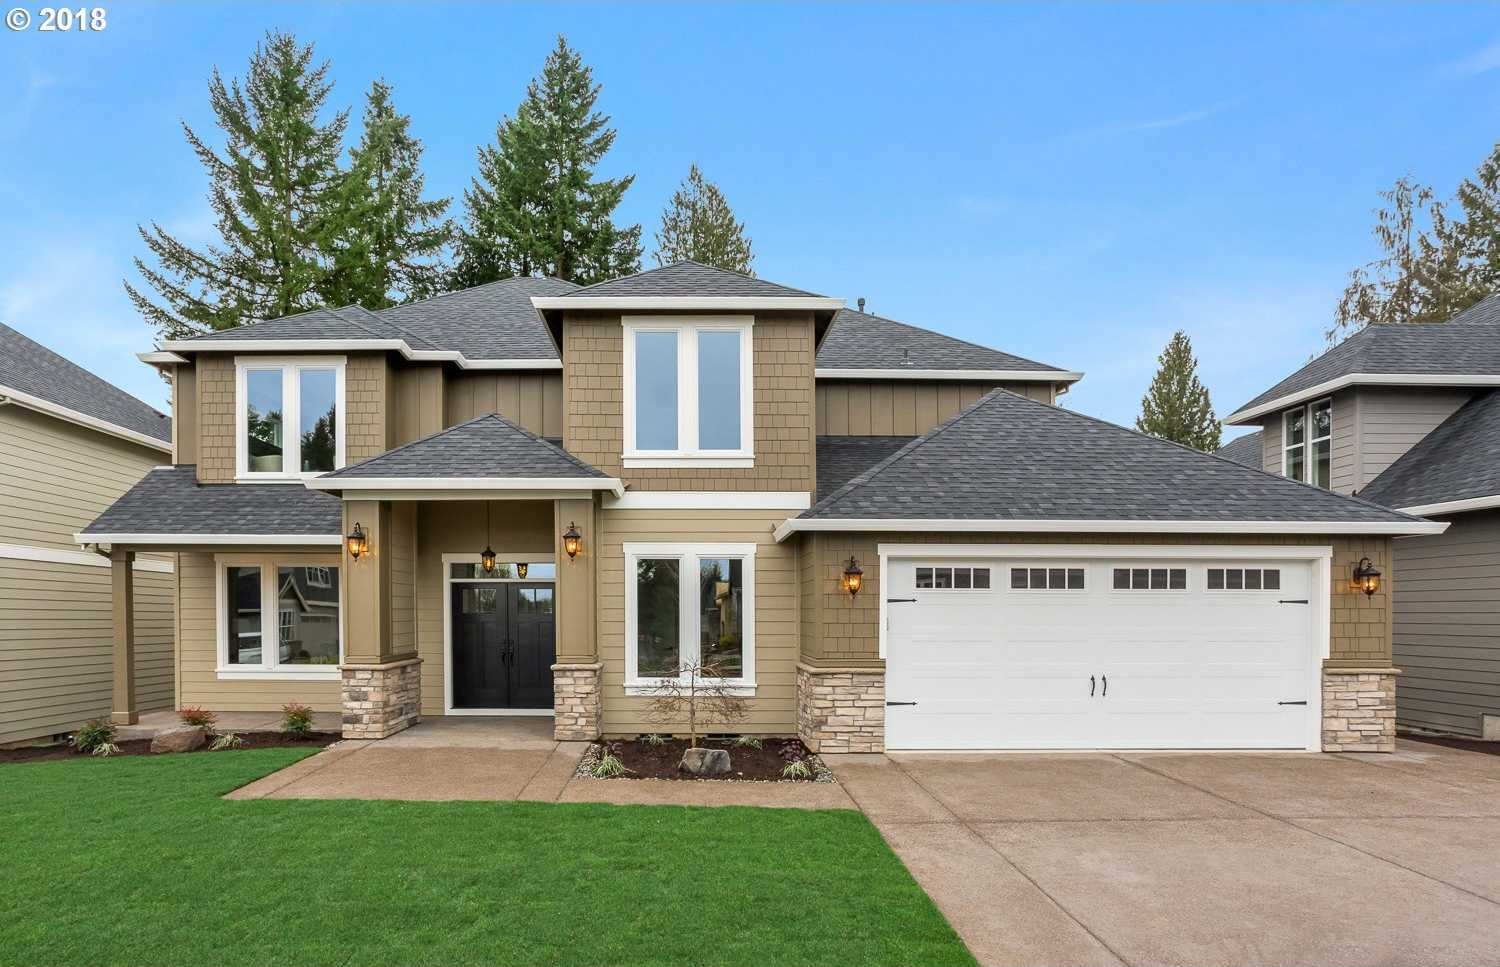 $979,000 - 4Br/3Ba -  for Sale in Tigard